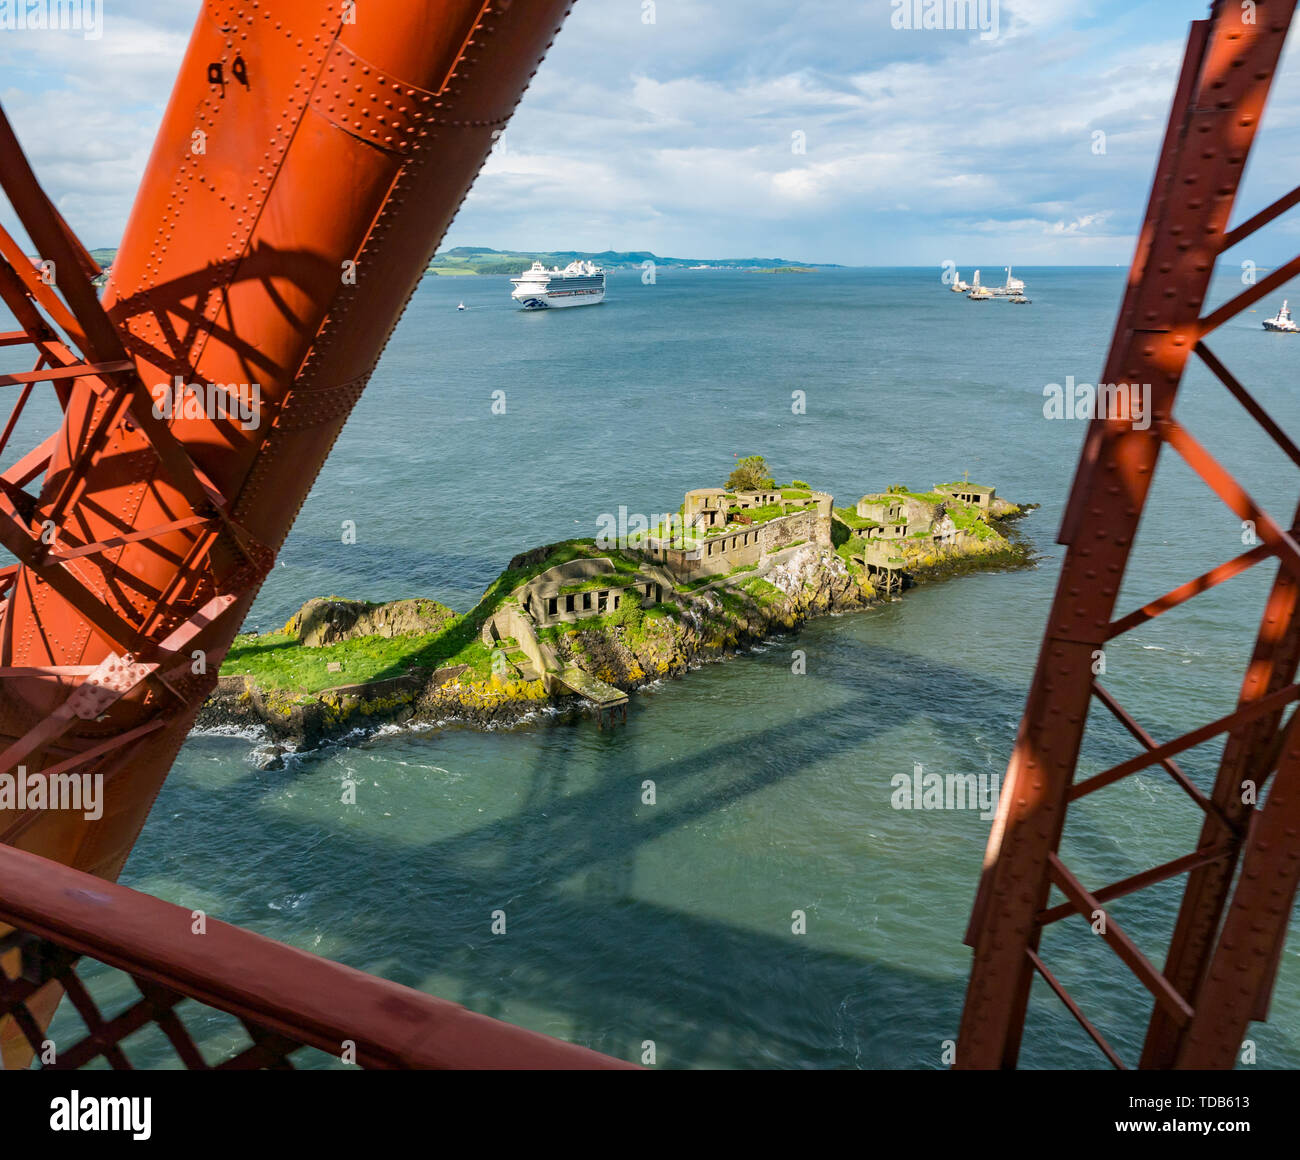 World War defence ruins, Inchgarvie Island, seen from Forth Rail Bridge, Firth of Forth, Scotland, UK - Stock Image